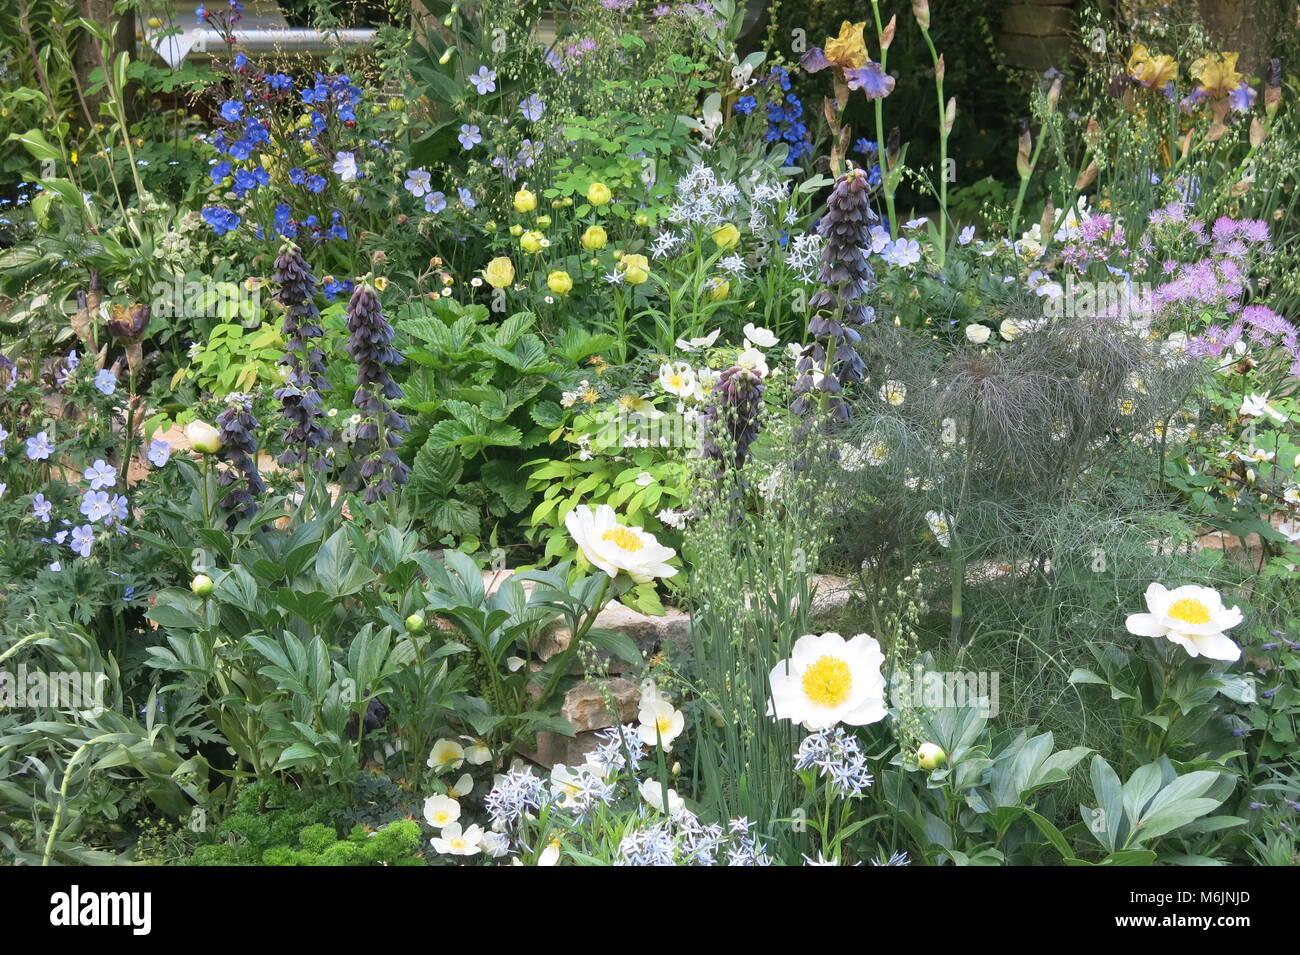 Summer colour from the show gardens at the RHS Chelsea Flower Show, May 2017 - Stock Image